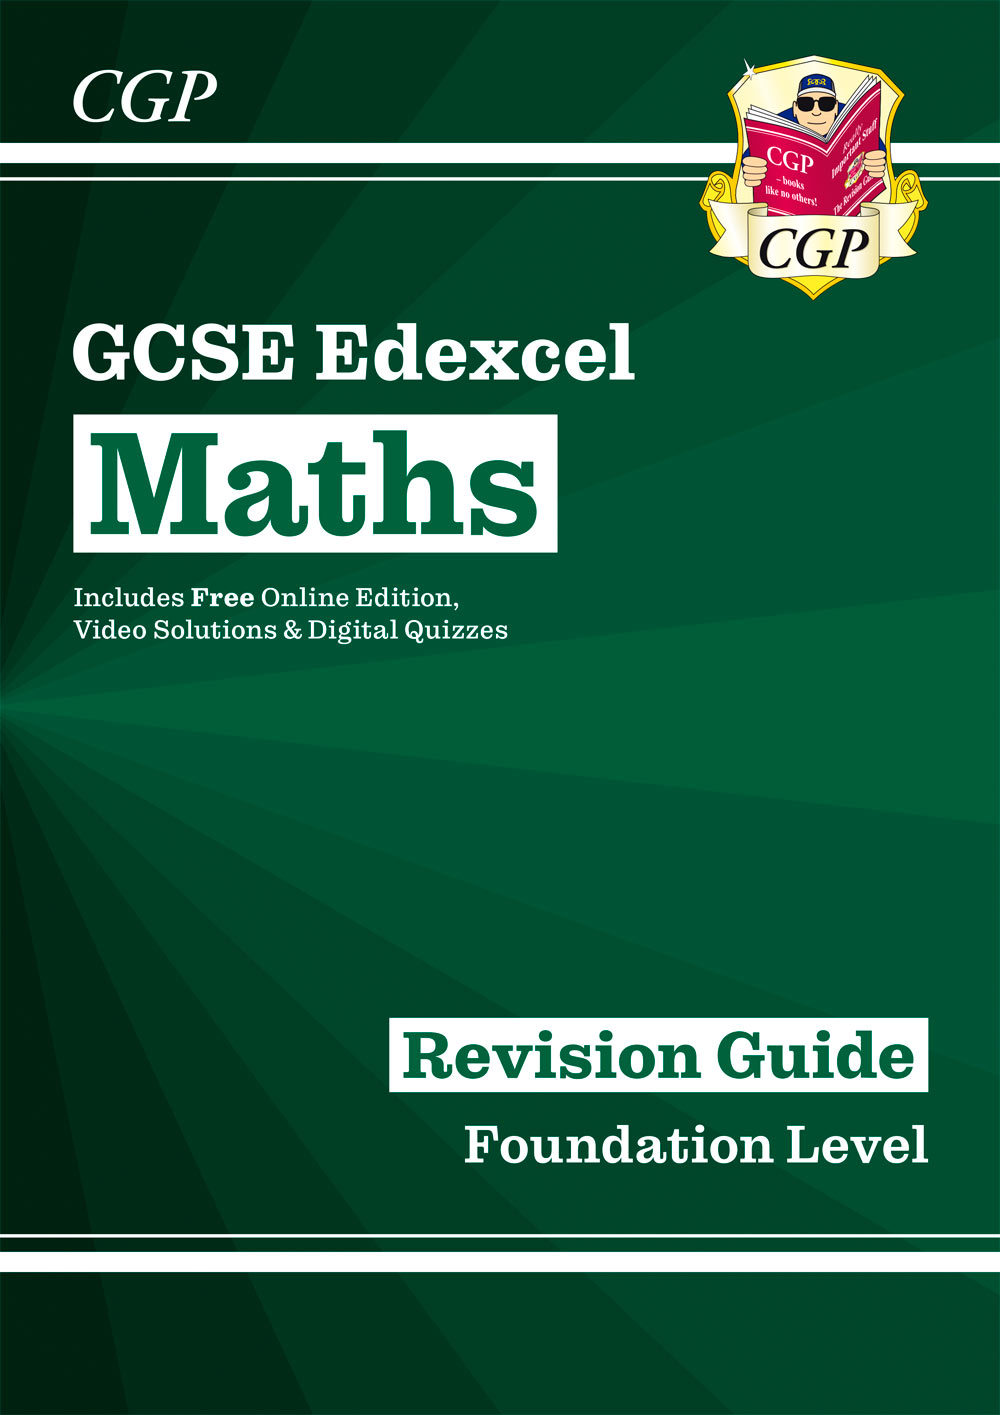 MXFR47 - New 2021 GCSE Maths Edexcel Revision Guide: Foundation inc Online Edition, Videos & Quizzes